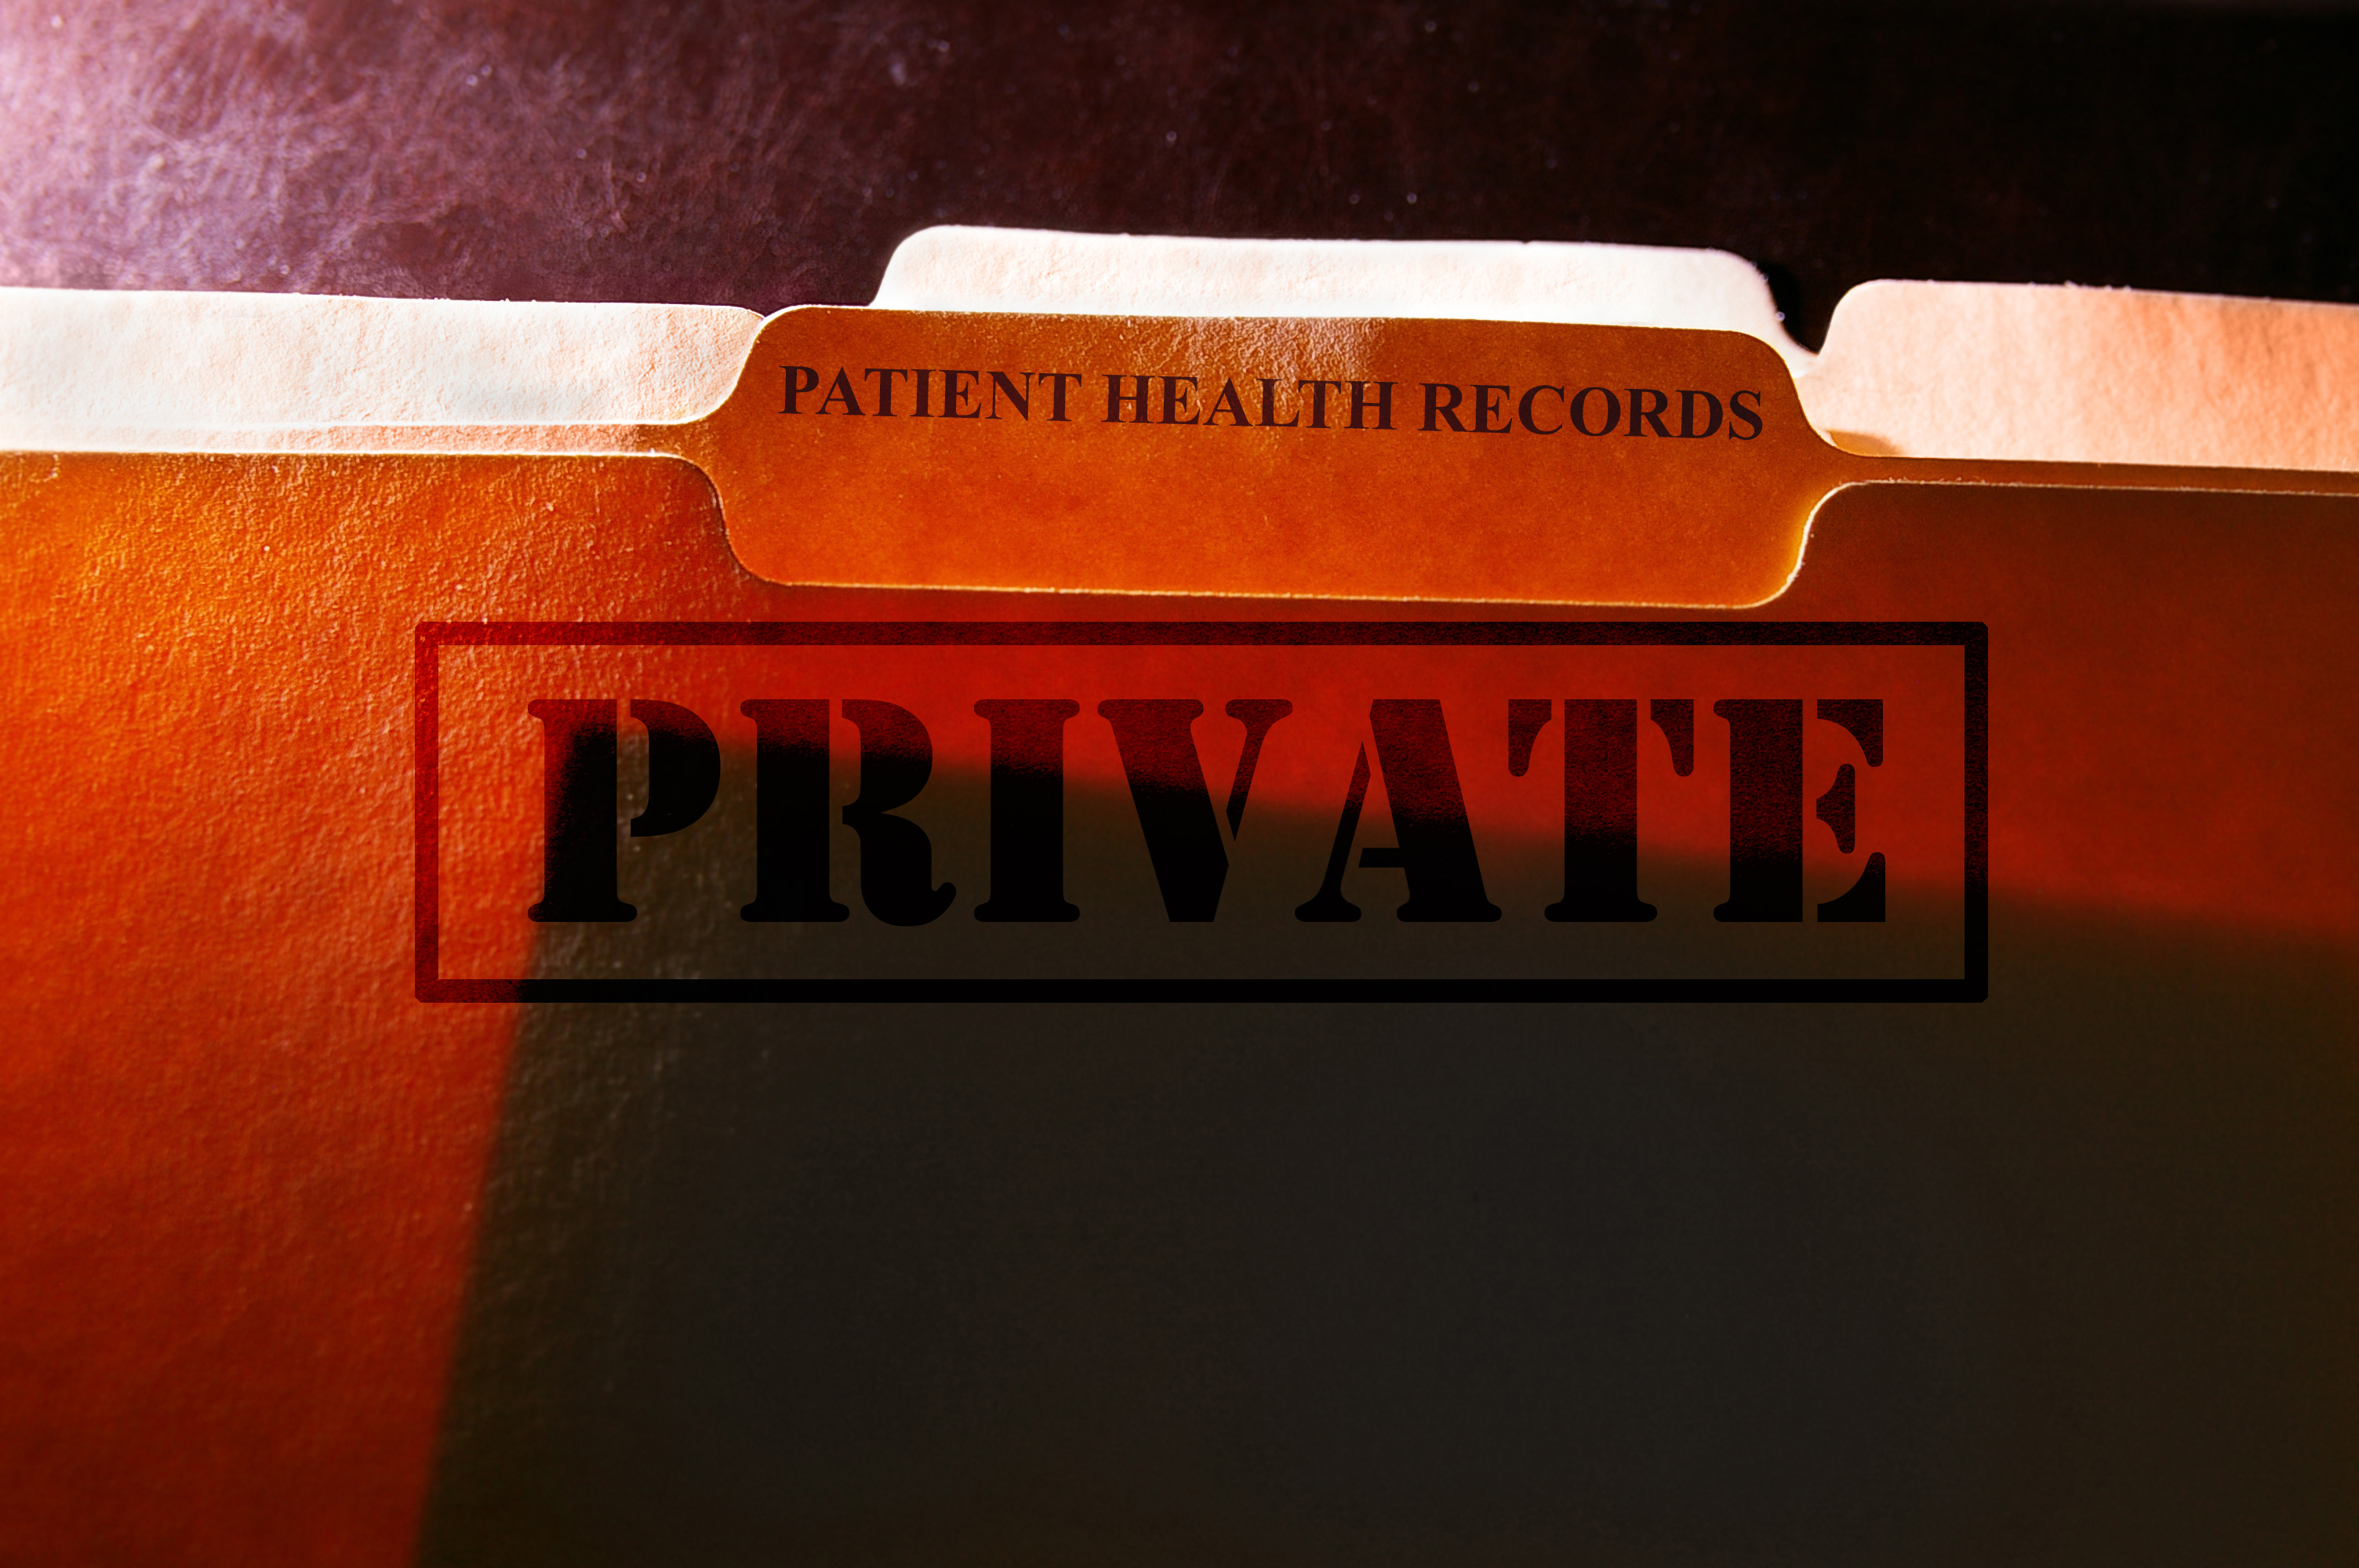 Hipaa Archives  The Compliance And Ethics Blog. What Is Short Term Insurance Us Patent Com. First Semester Of Nursing School. How To Make Online Ads Schools For Filmmaking. Vacation Condo Los Angeles Mis Degree Online. Event Viewer Windows Xp Lacerte Software Cost. Body Contouring Liposuction Credit Card Back. Volinia Outcomes School Colleges In Boston Ma. Jquery Ui Rich Text Editor Town Lake Rentals